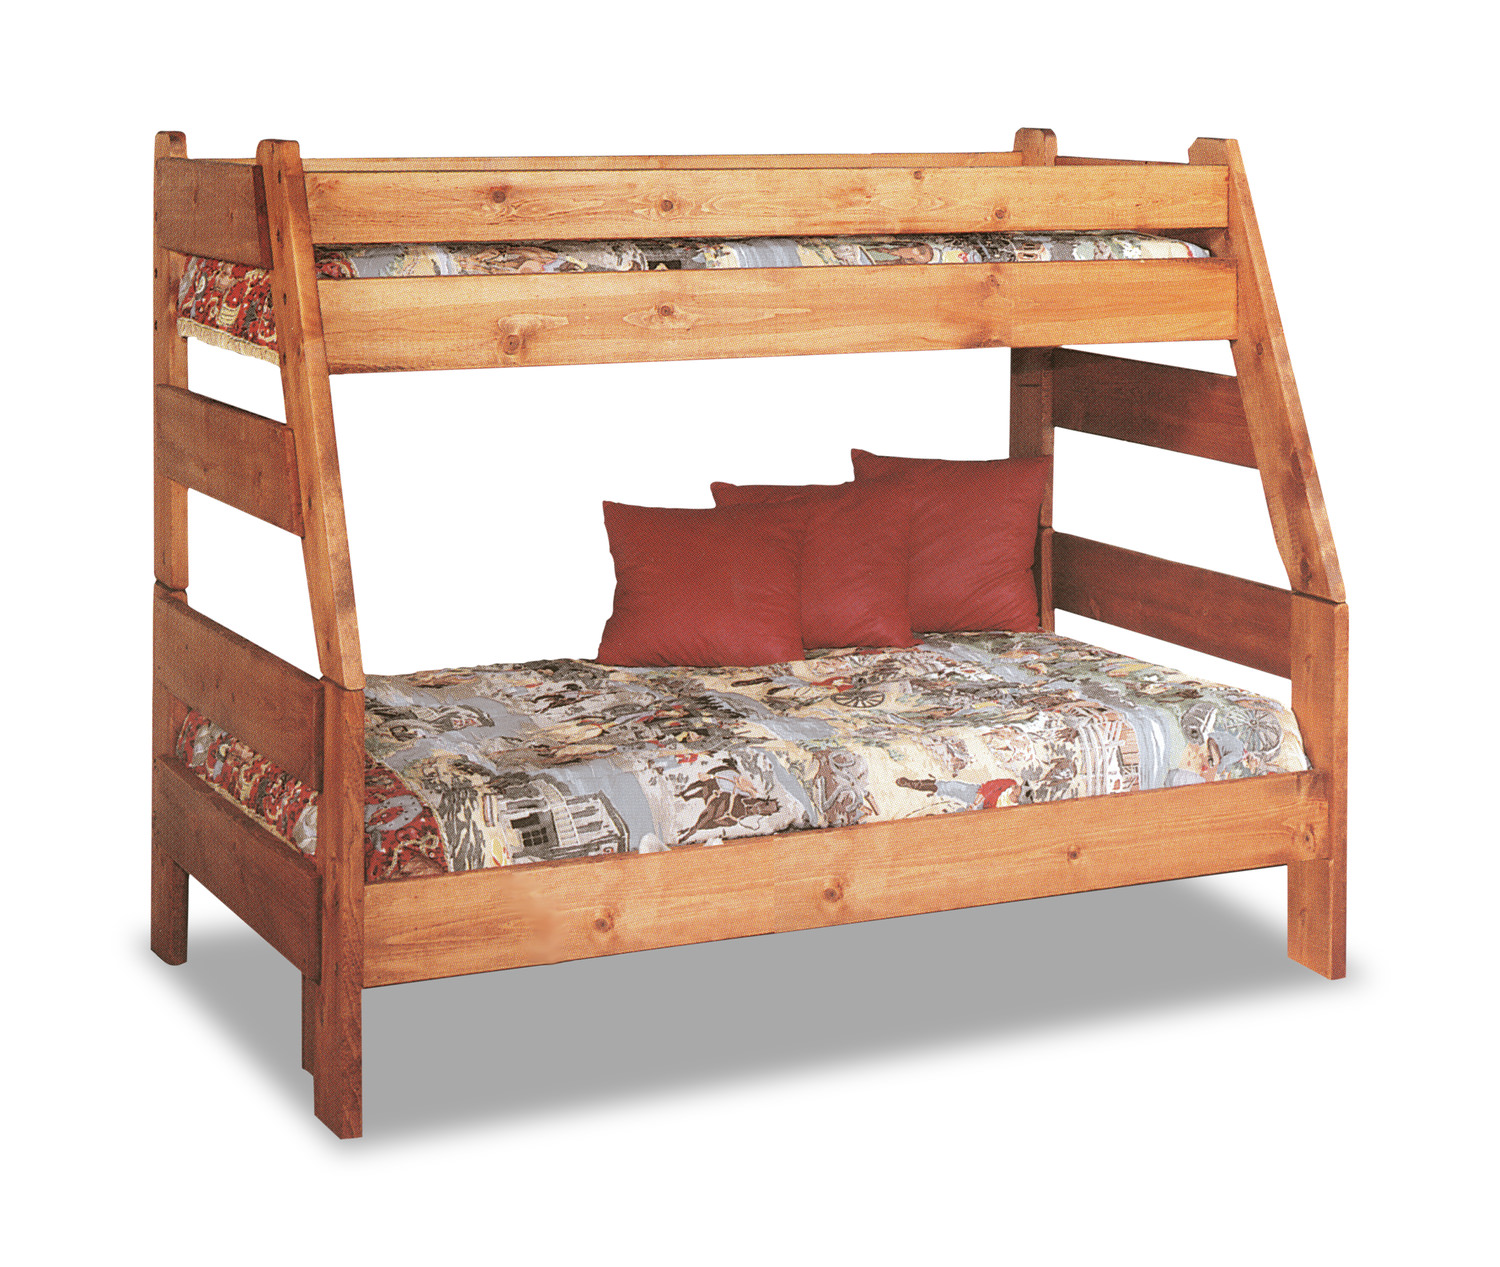 High Sierra Twin Over Full Bunk Bed   Cinnamon finish. High Sierra Twin Over Full Bunk Bed   Cinnamon finish   HOM Furniture